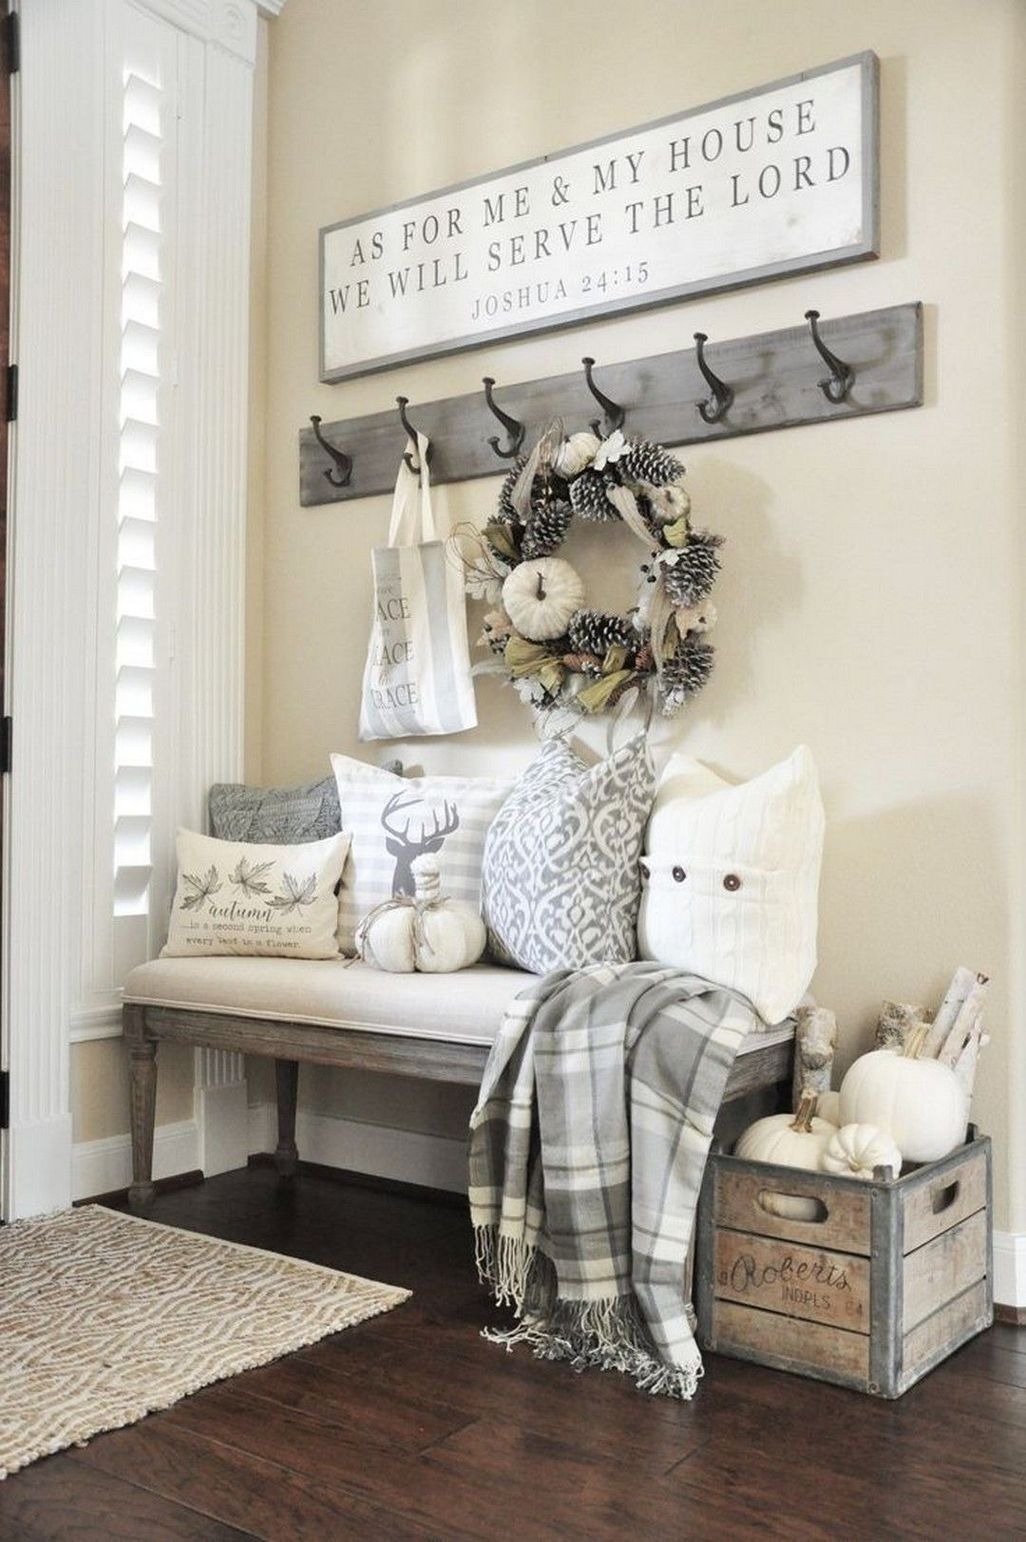 48 Affordable Rustic Home Decor Ideas On A Budget | Budgeting, House ...